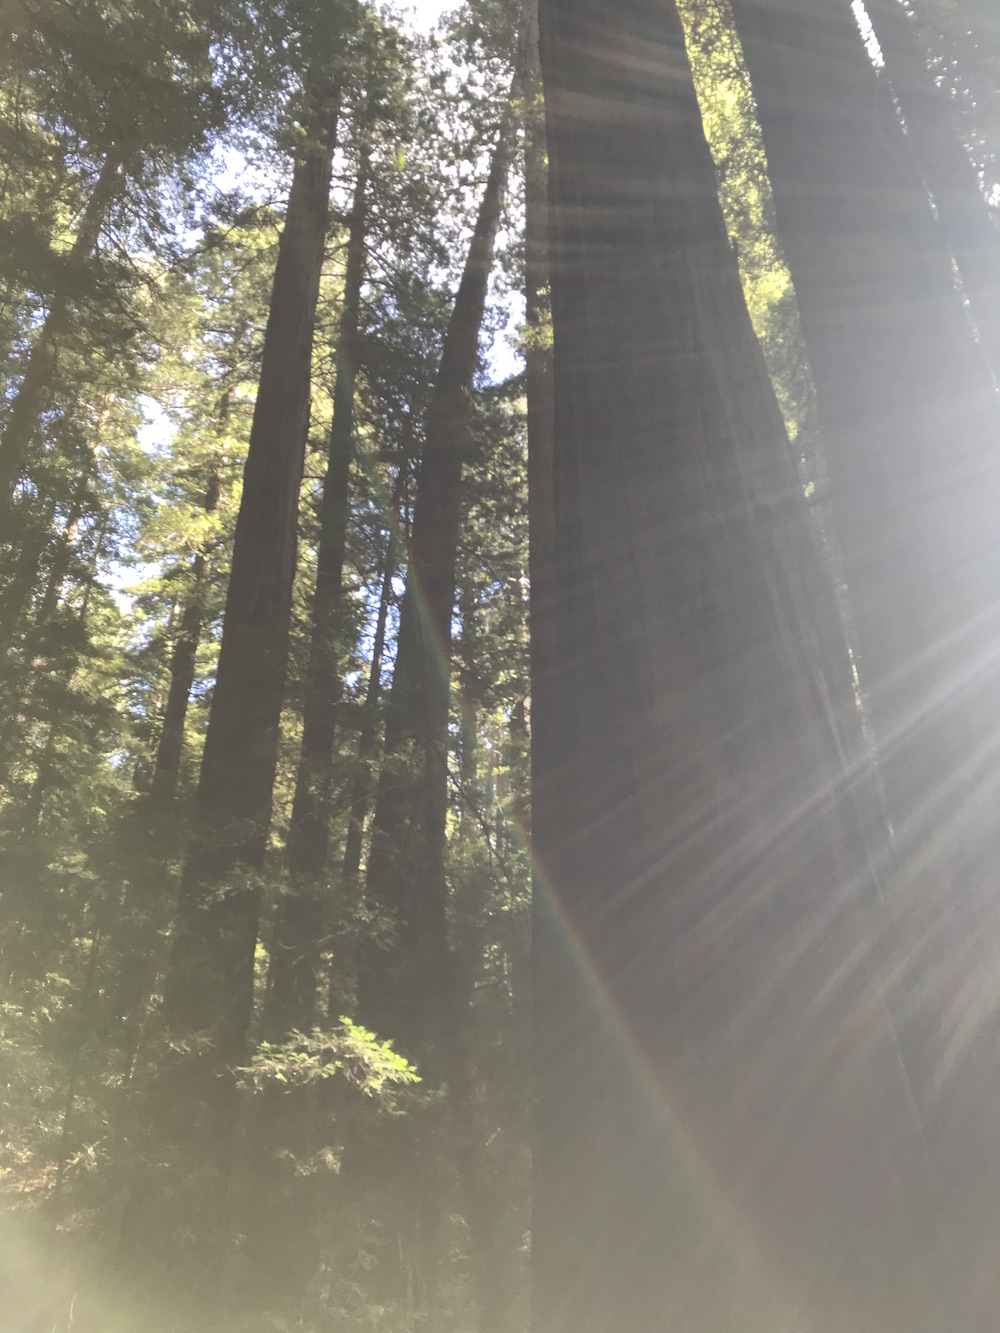 Casually Baked, Avenue of the Giants